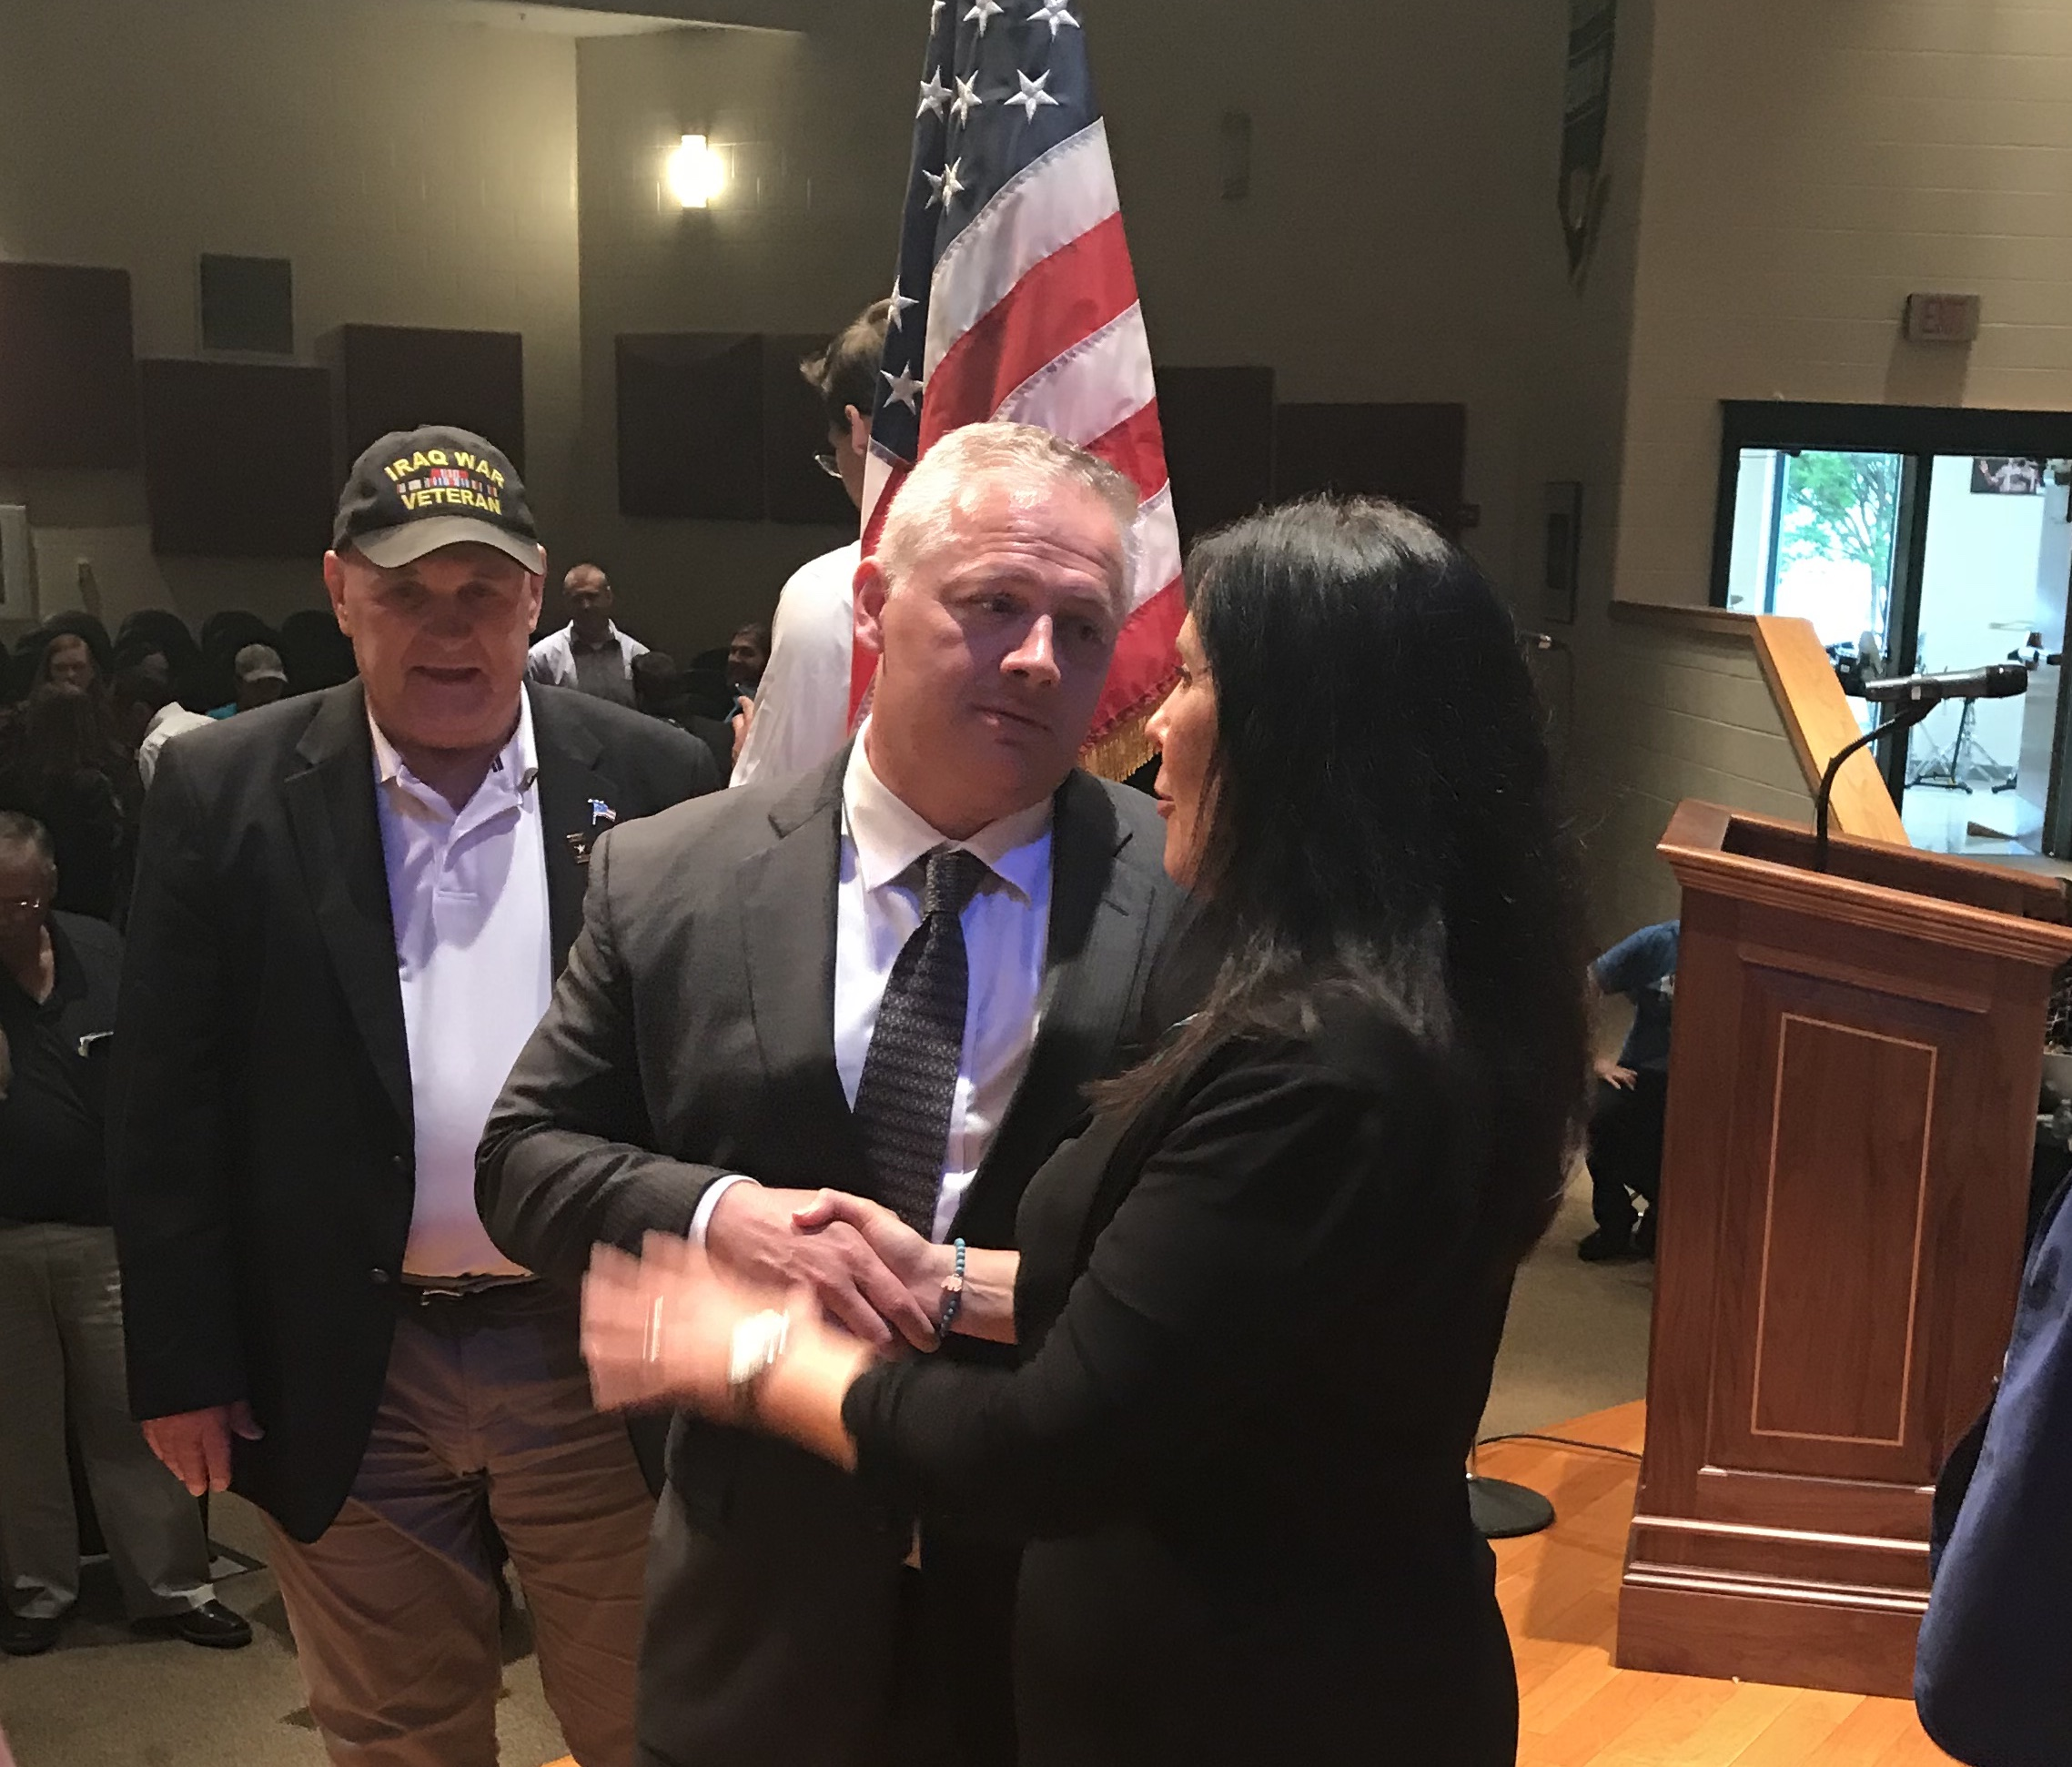 Denver Riggleman Will Be The Republican Nominee To Replace